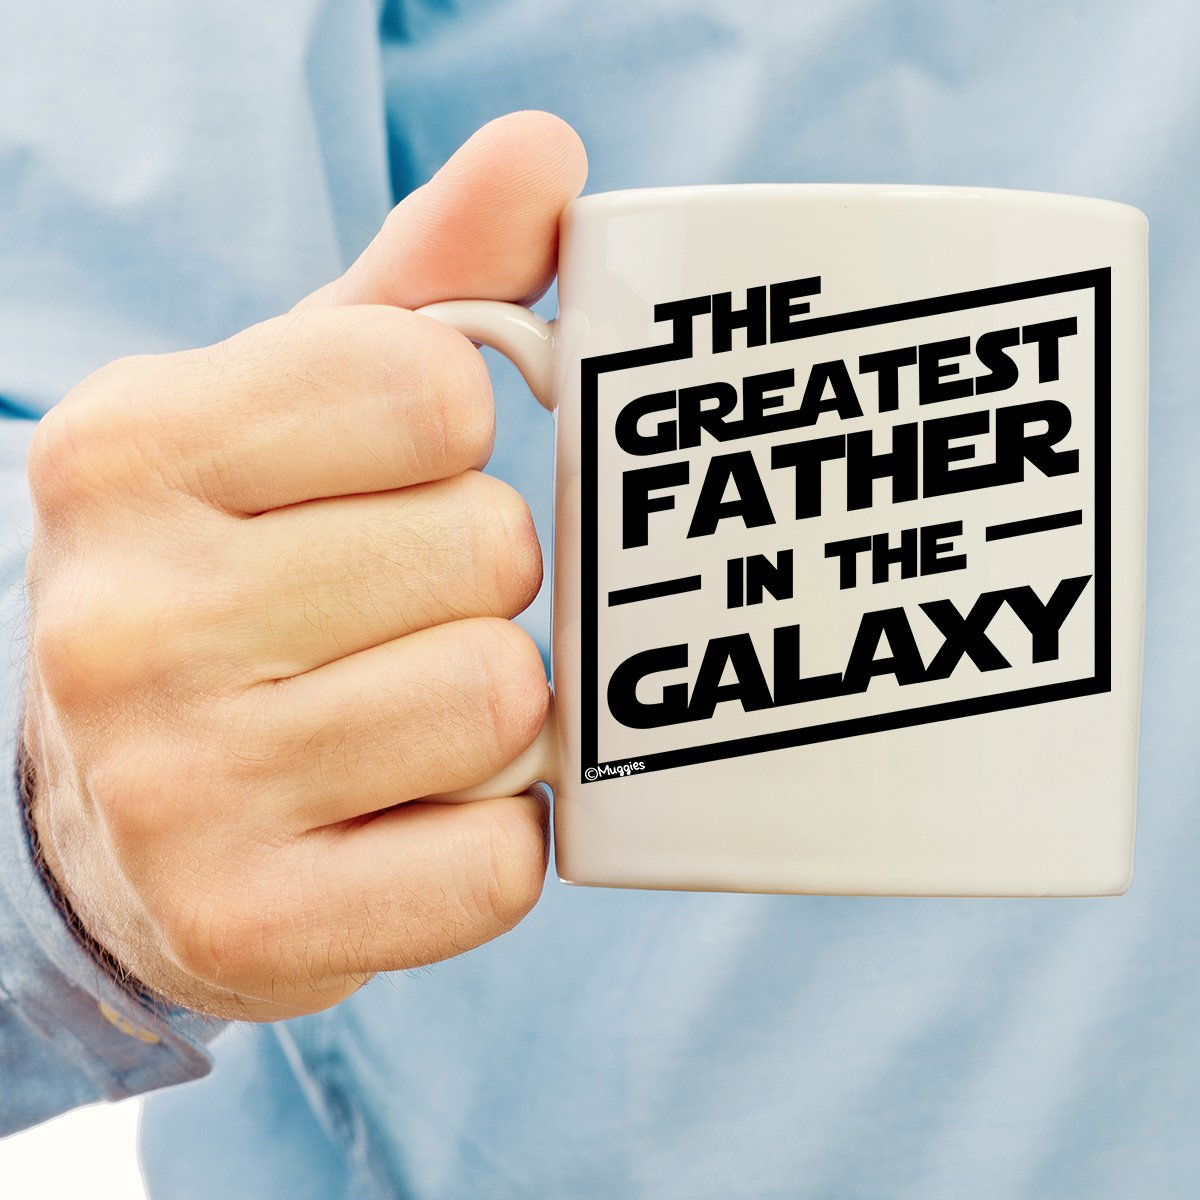 Muggies Greatest Father in The Galaxy 11oz. Coffee Tea Mug. Unique Funny Christmas, Xmas, Birthday, for Him - Super Star Men, Dad, Husband by GENUTRI (Image #4)